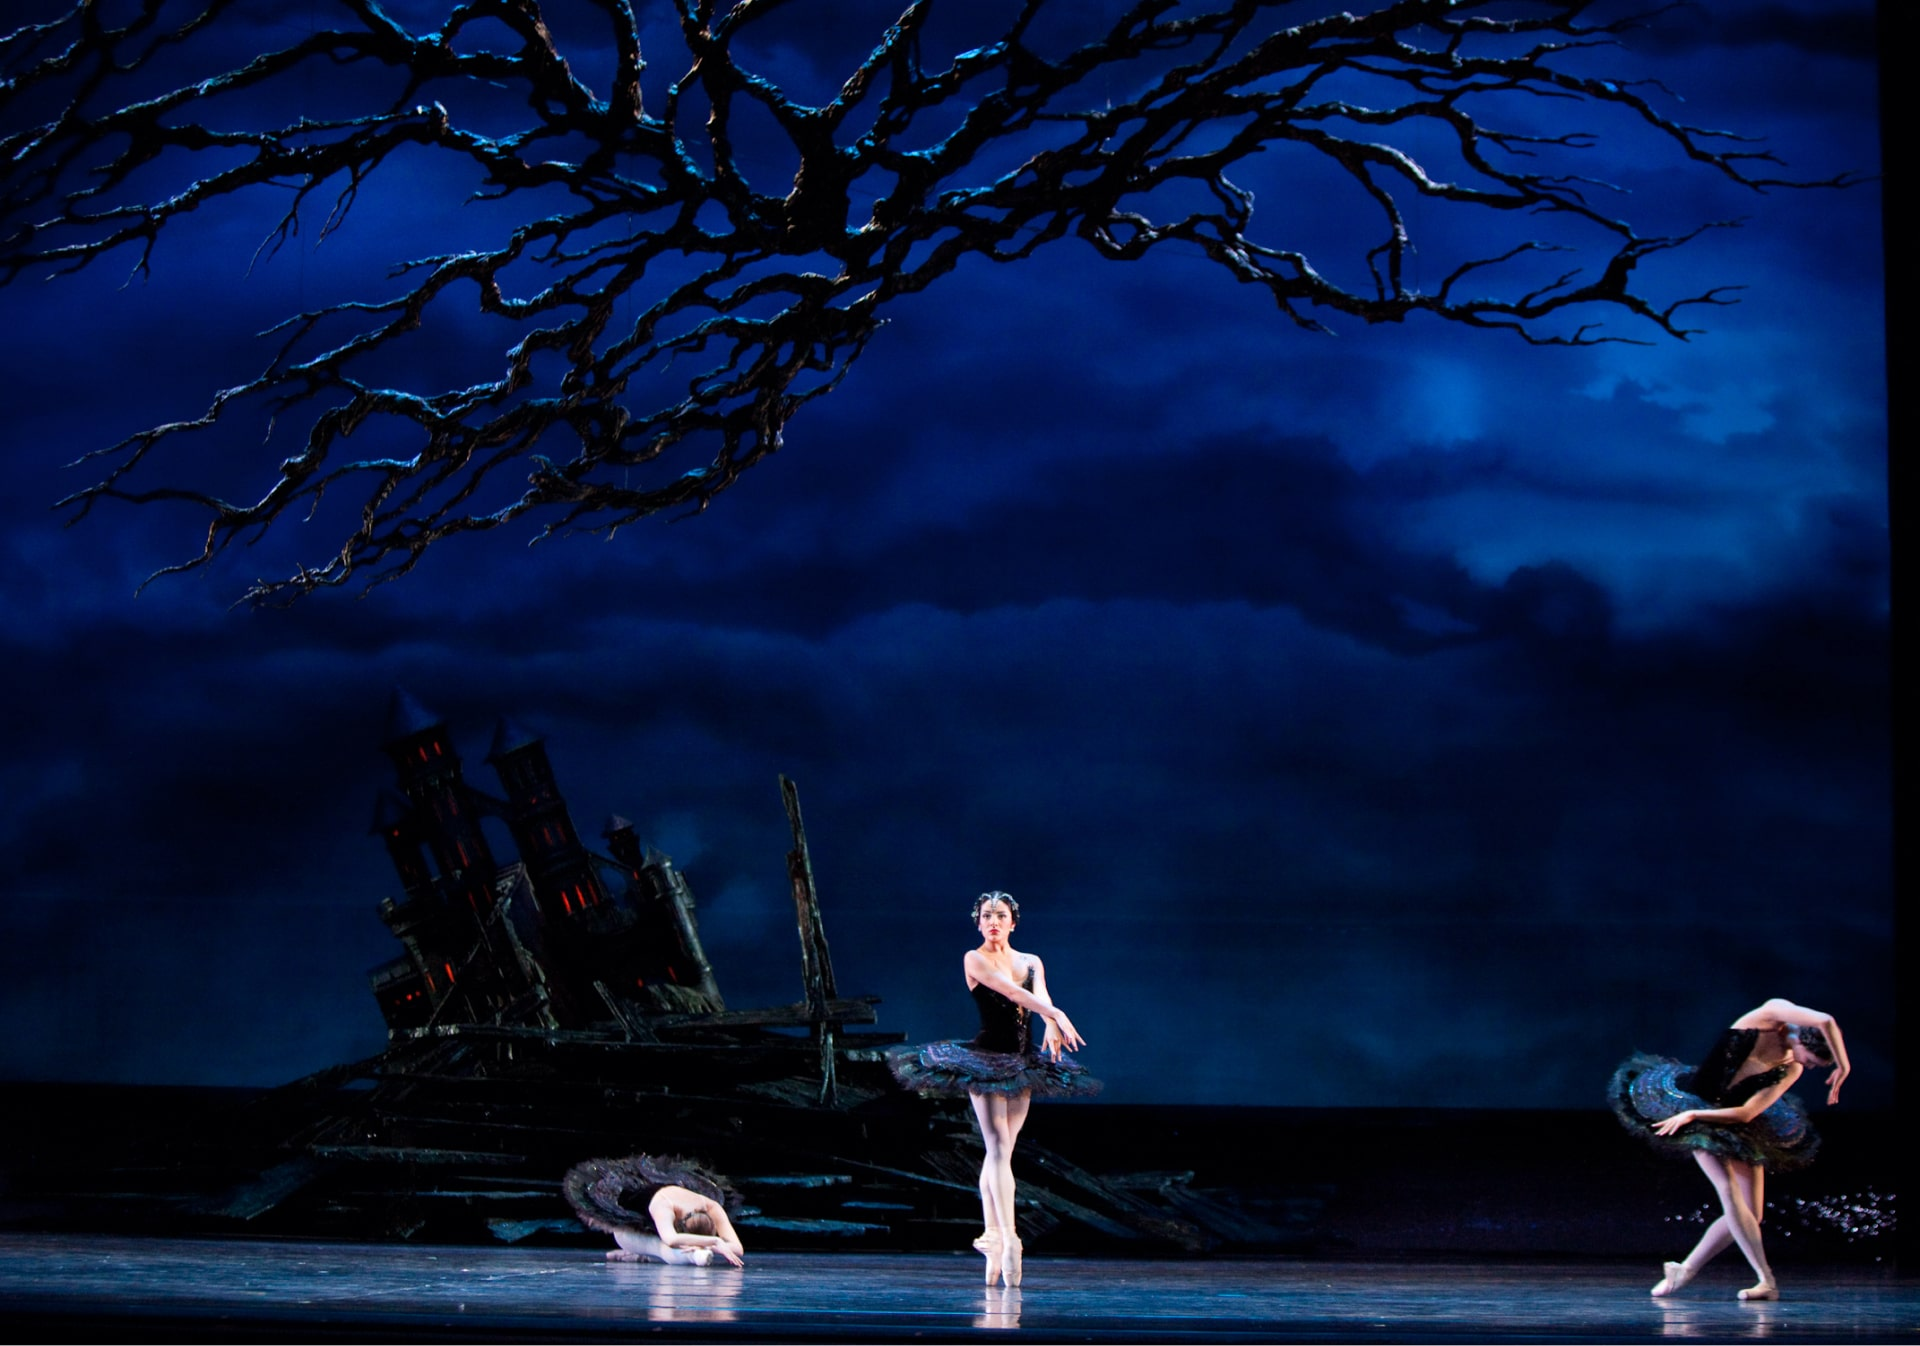 Three ballerinas in black tutus dance under craggy branches in front of teetering castle against dark blue clouds.